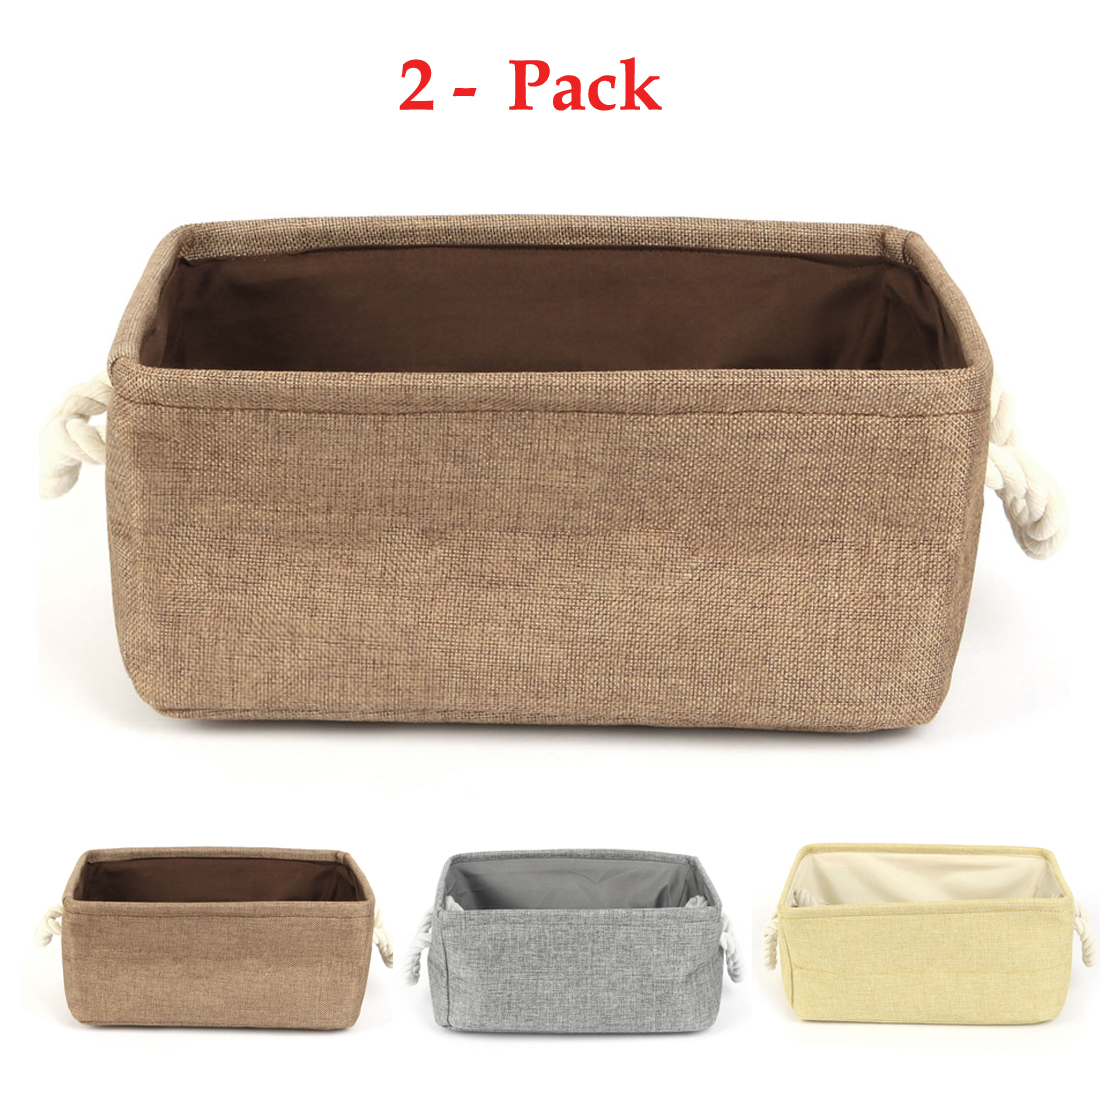 Home Fabric Collapsible Storage Baskets Bin Toy Organizer ,2Pack